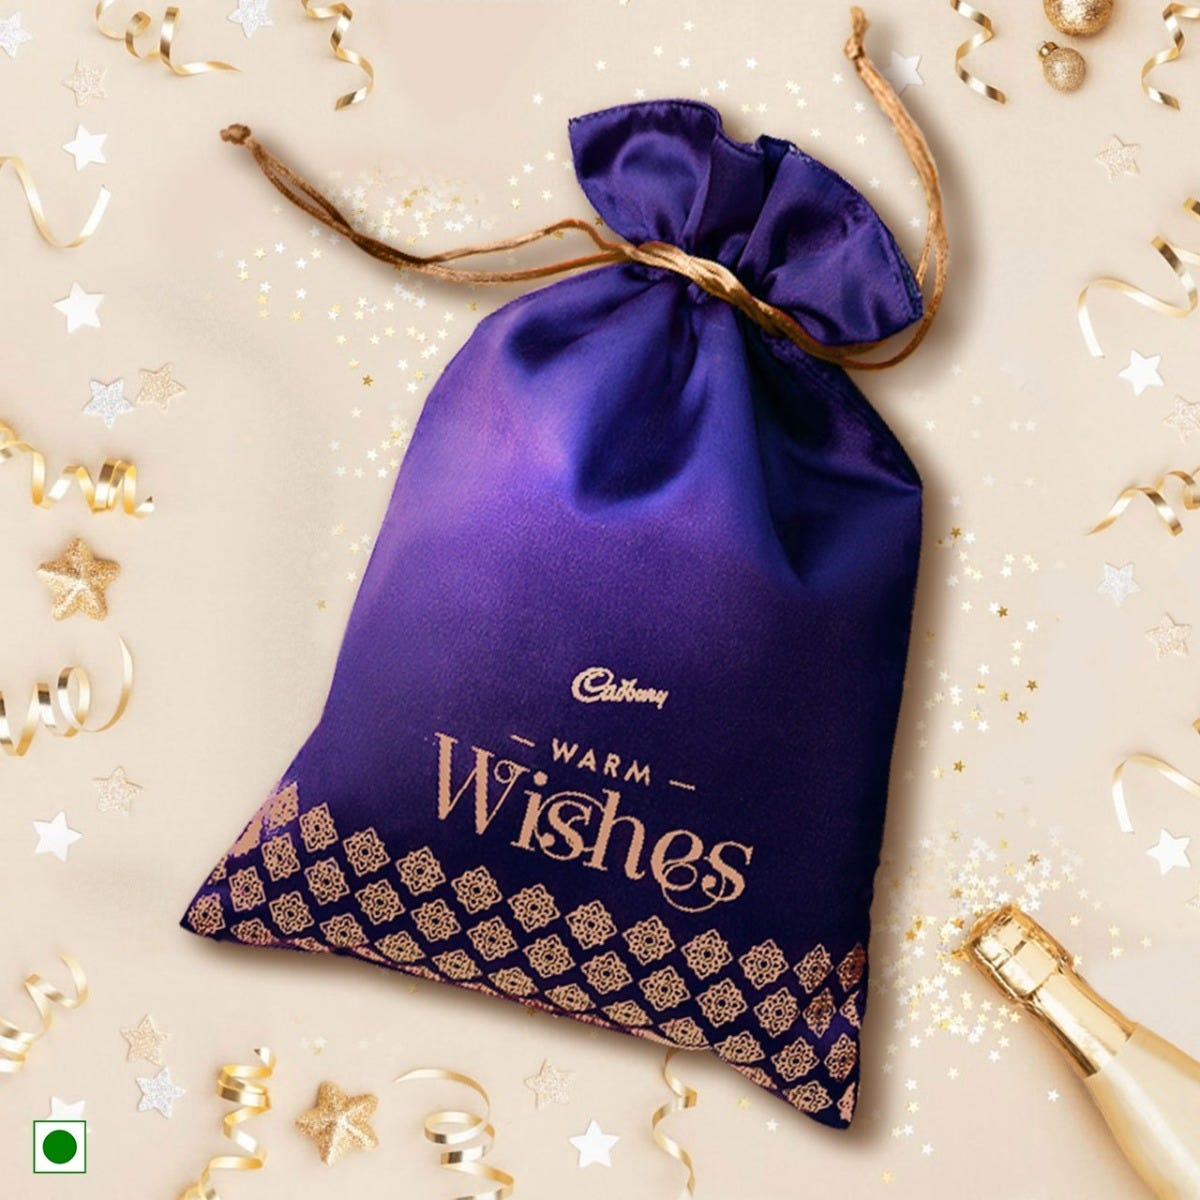 Unique New Year Corporate Gifting Ideas with Cadbury